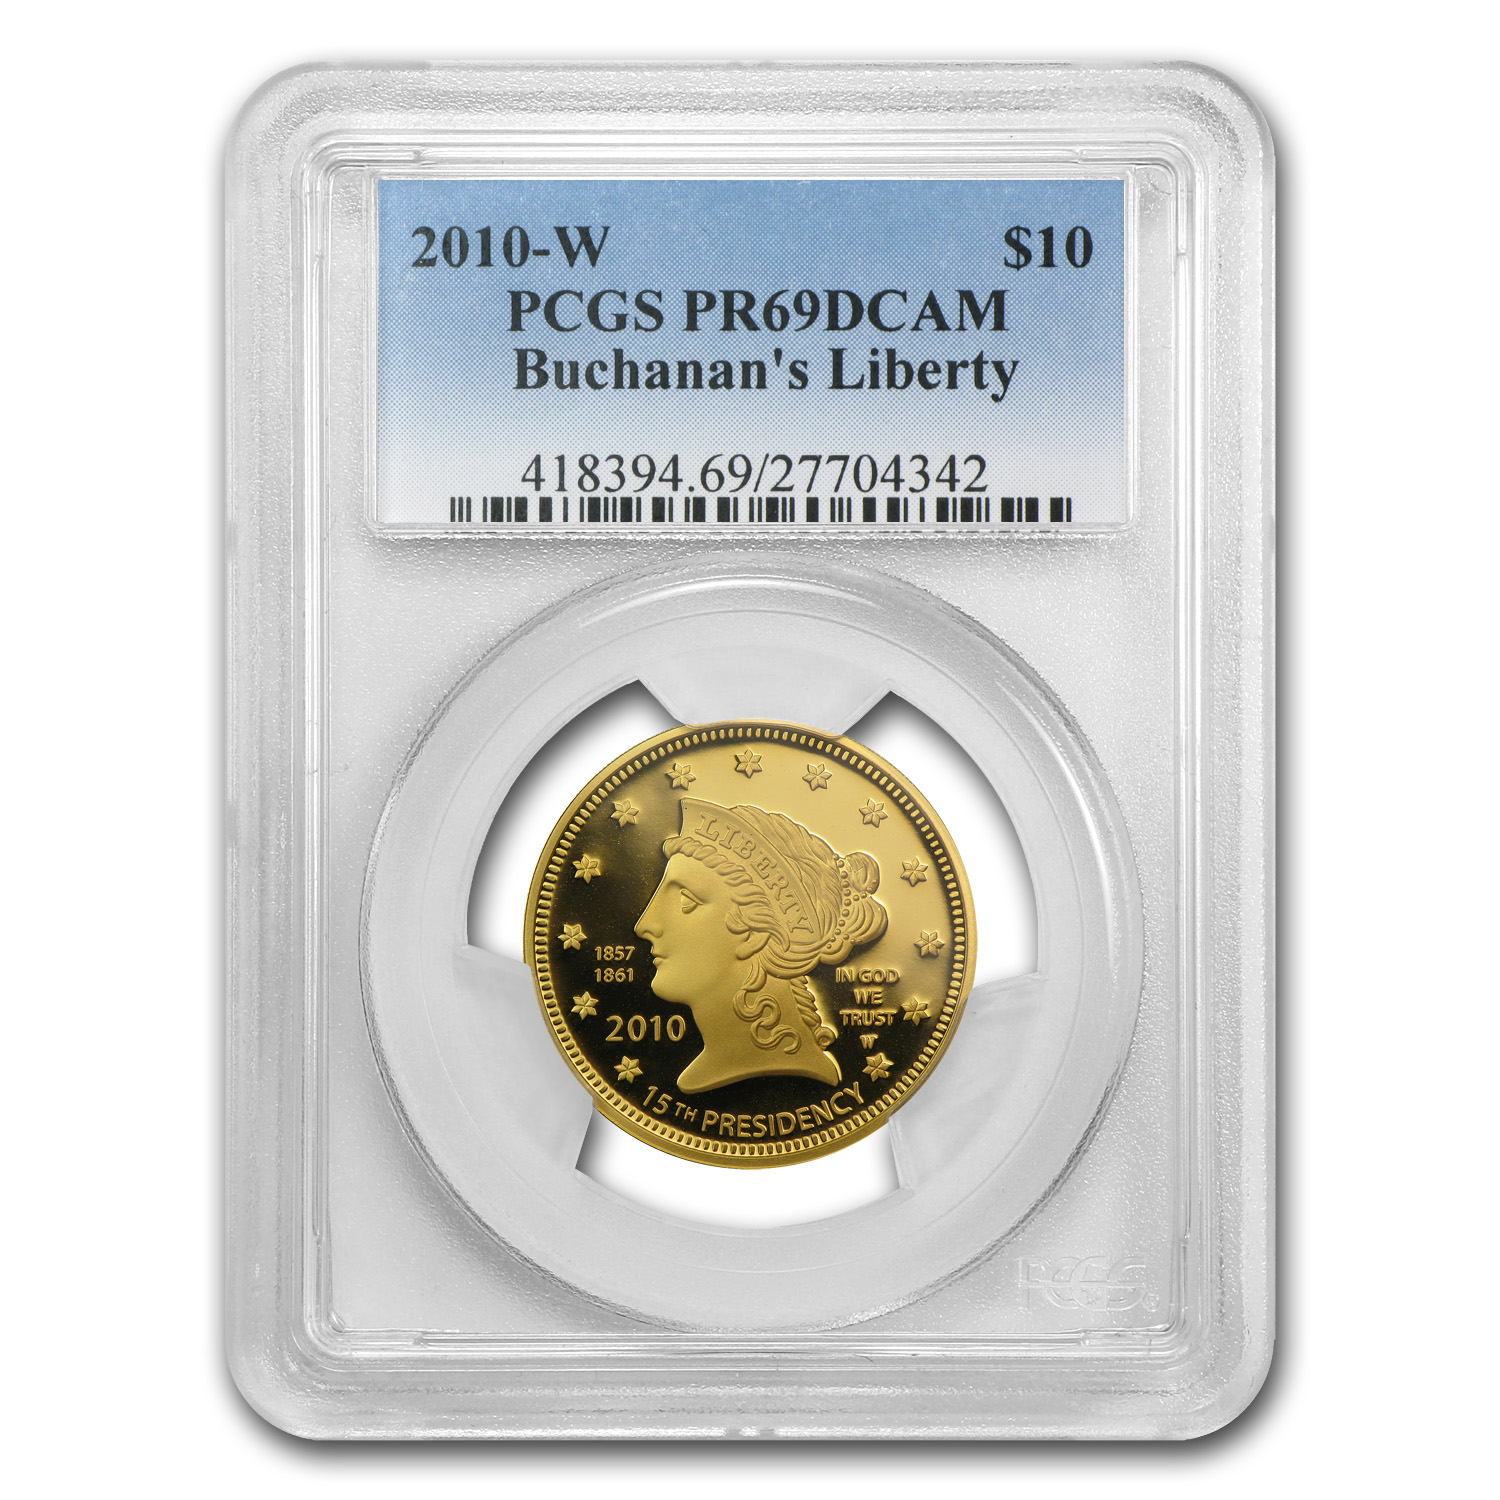 2010-W 1/2 oz Proof Gold Buchanan's Liberty PR-69 PCGS